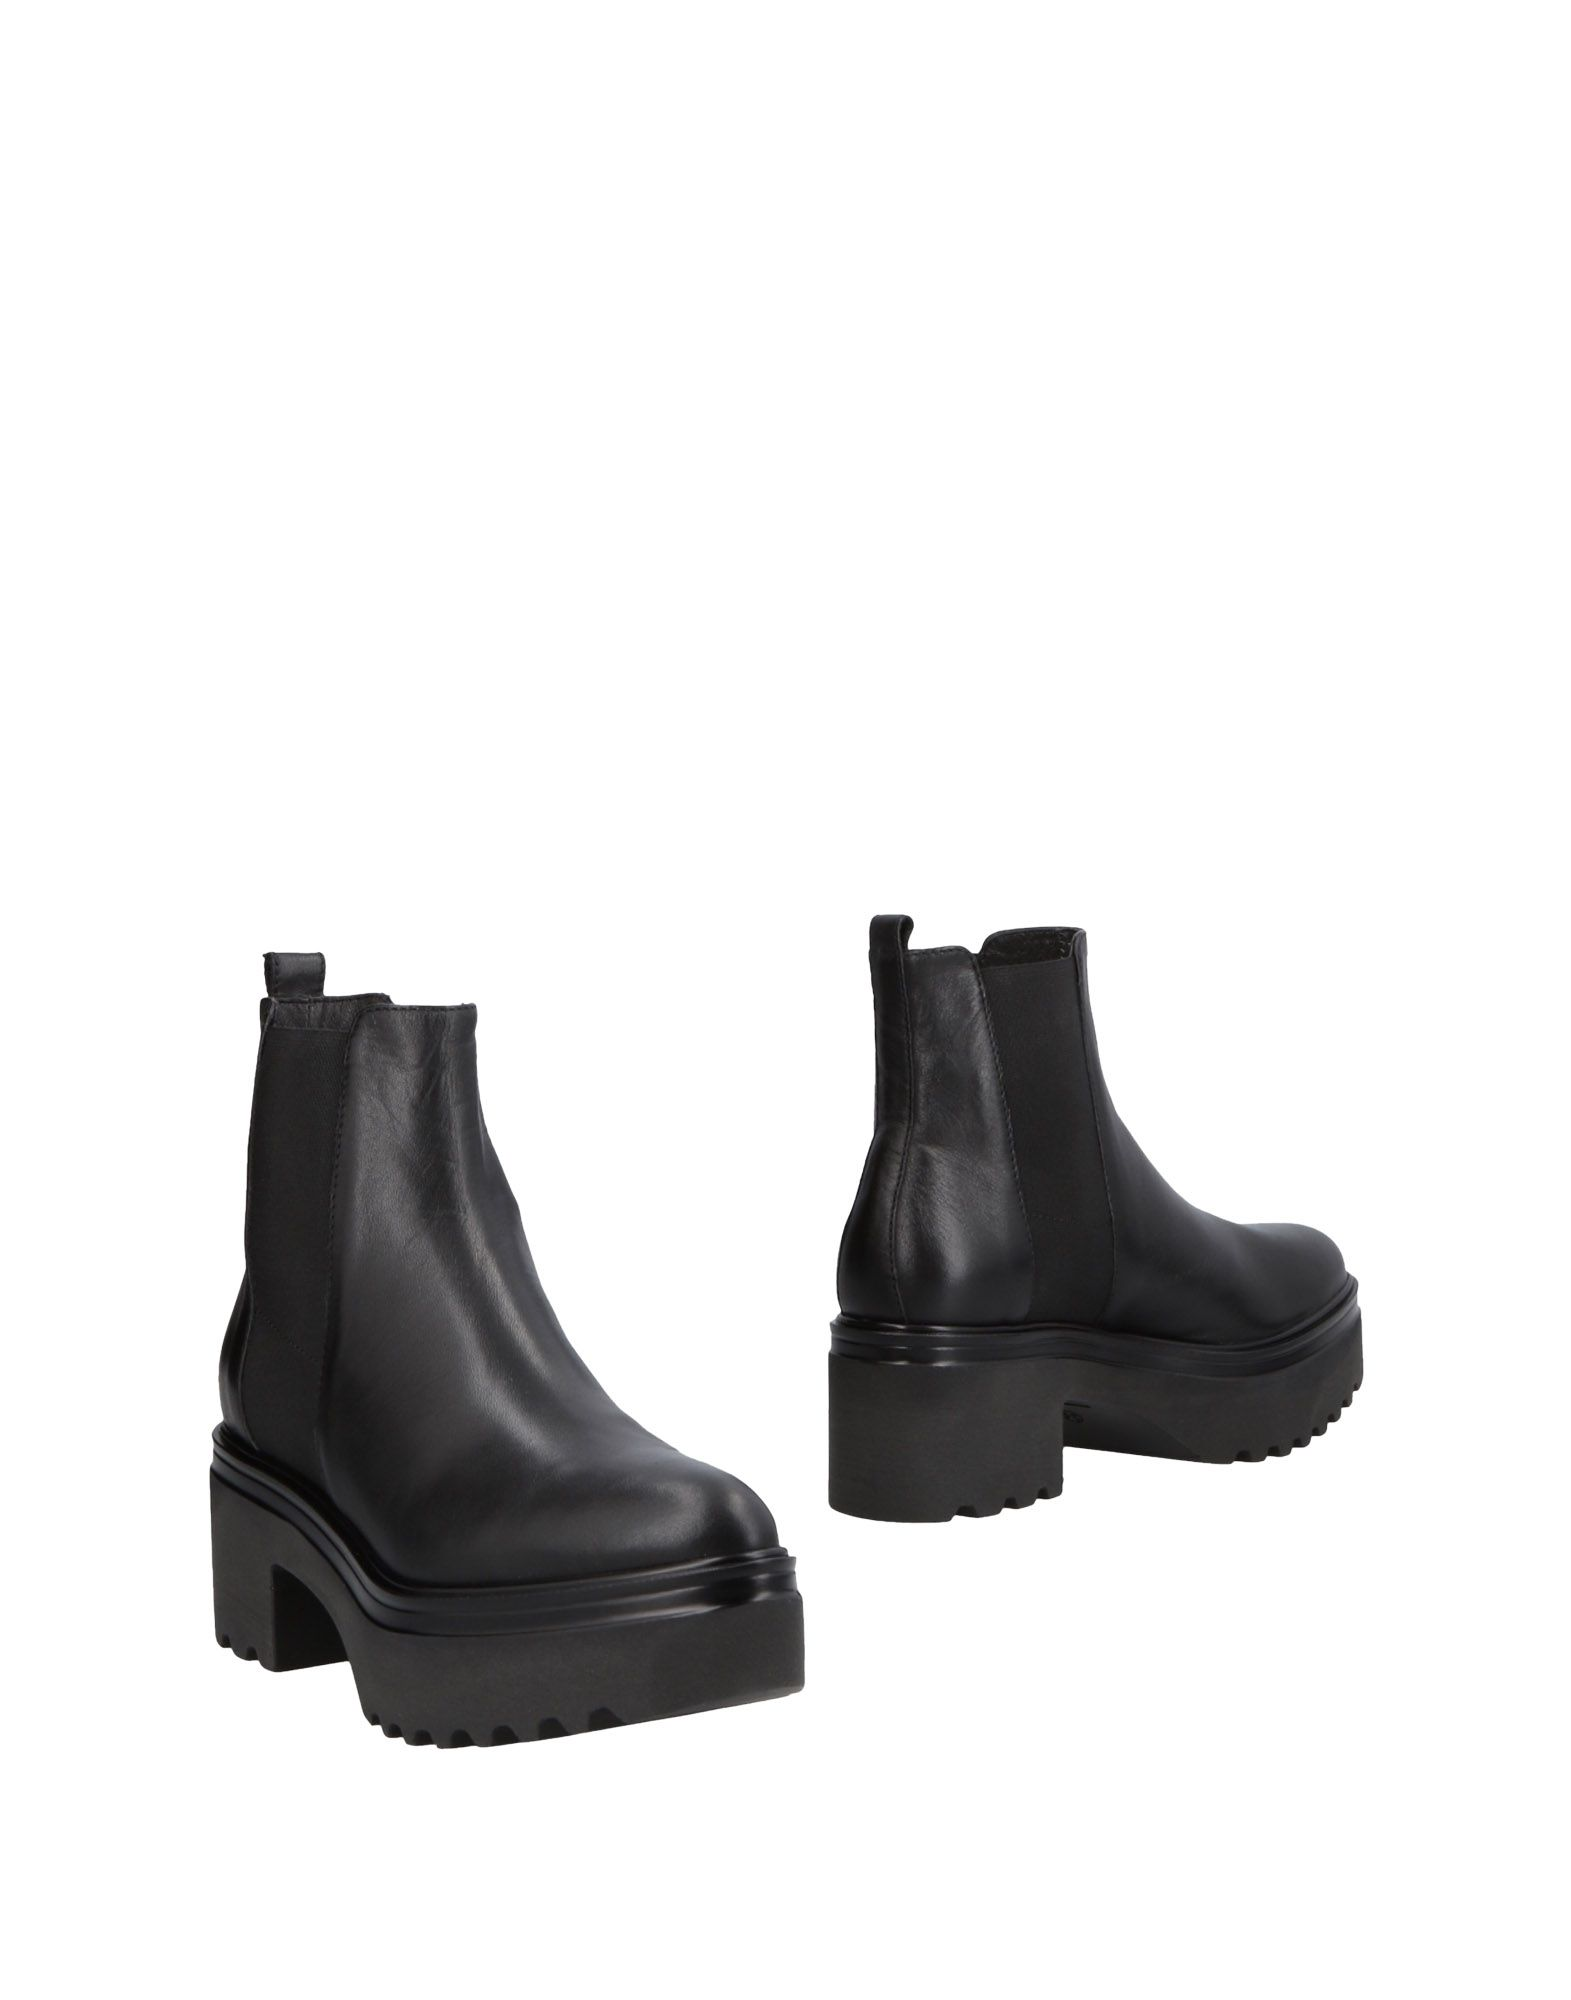 Chelsea Boots Janet - Sport Donna - Janet 11495785RD fedb3a